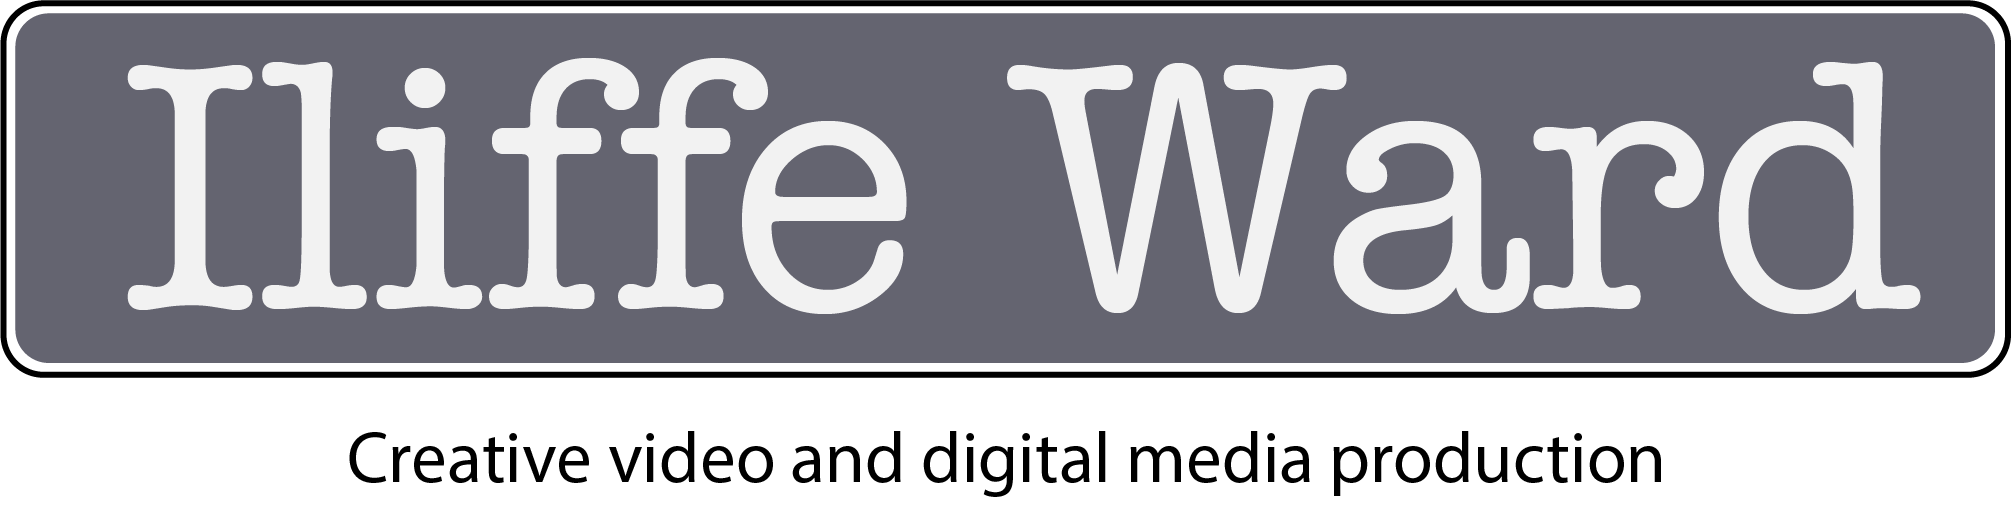 Iliffe Ward Creative Video Production and Digital Media